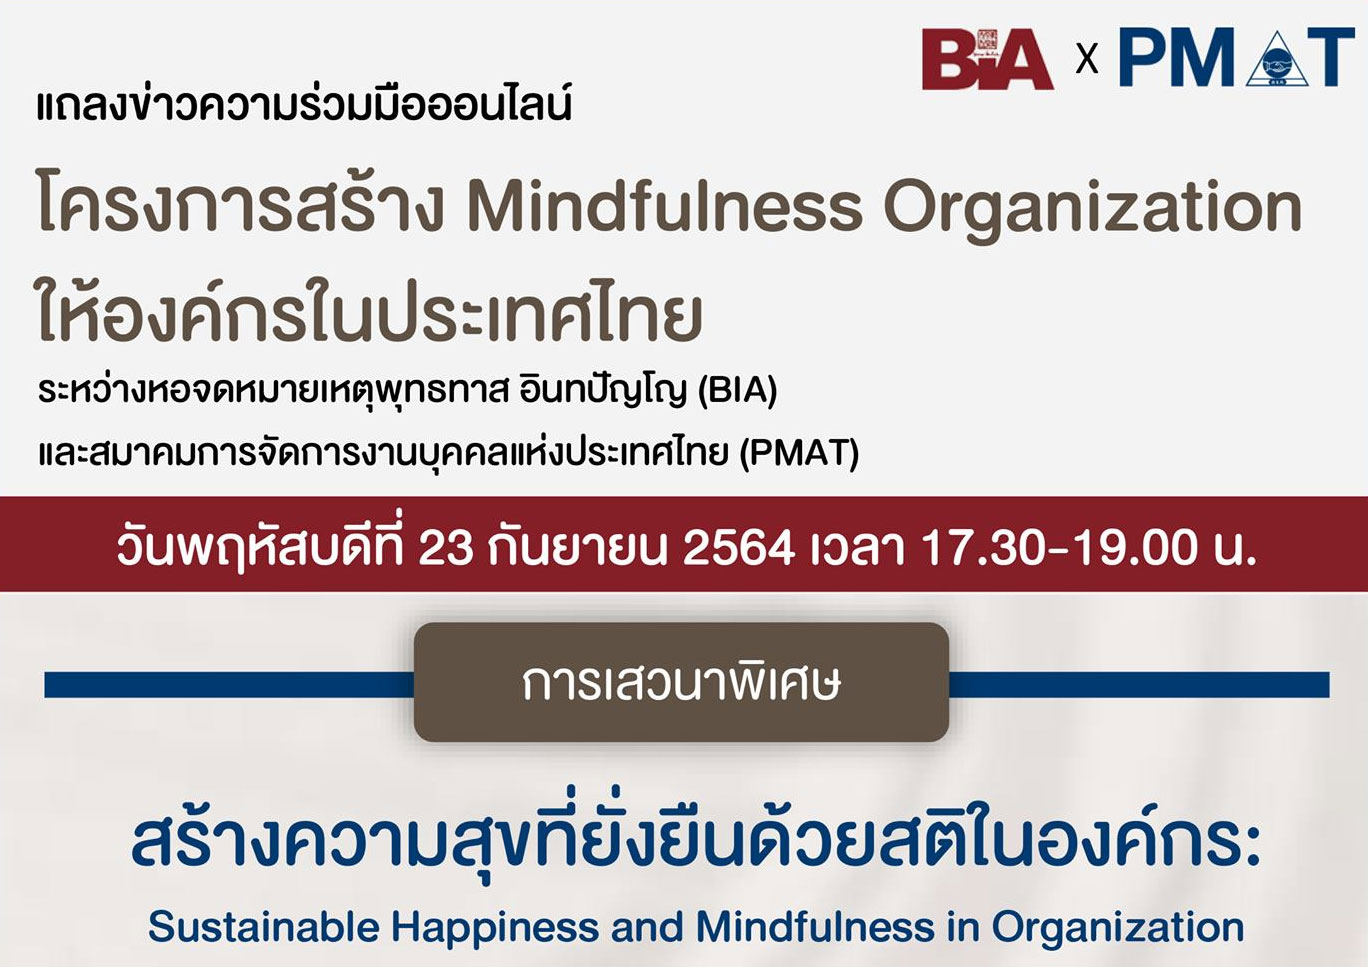 �����ǹҾ���� ���ҧ�����آ�����������ʵ��ͧ���: Sustainable Happiness and Mindfulness in Organization